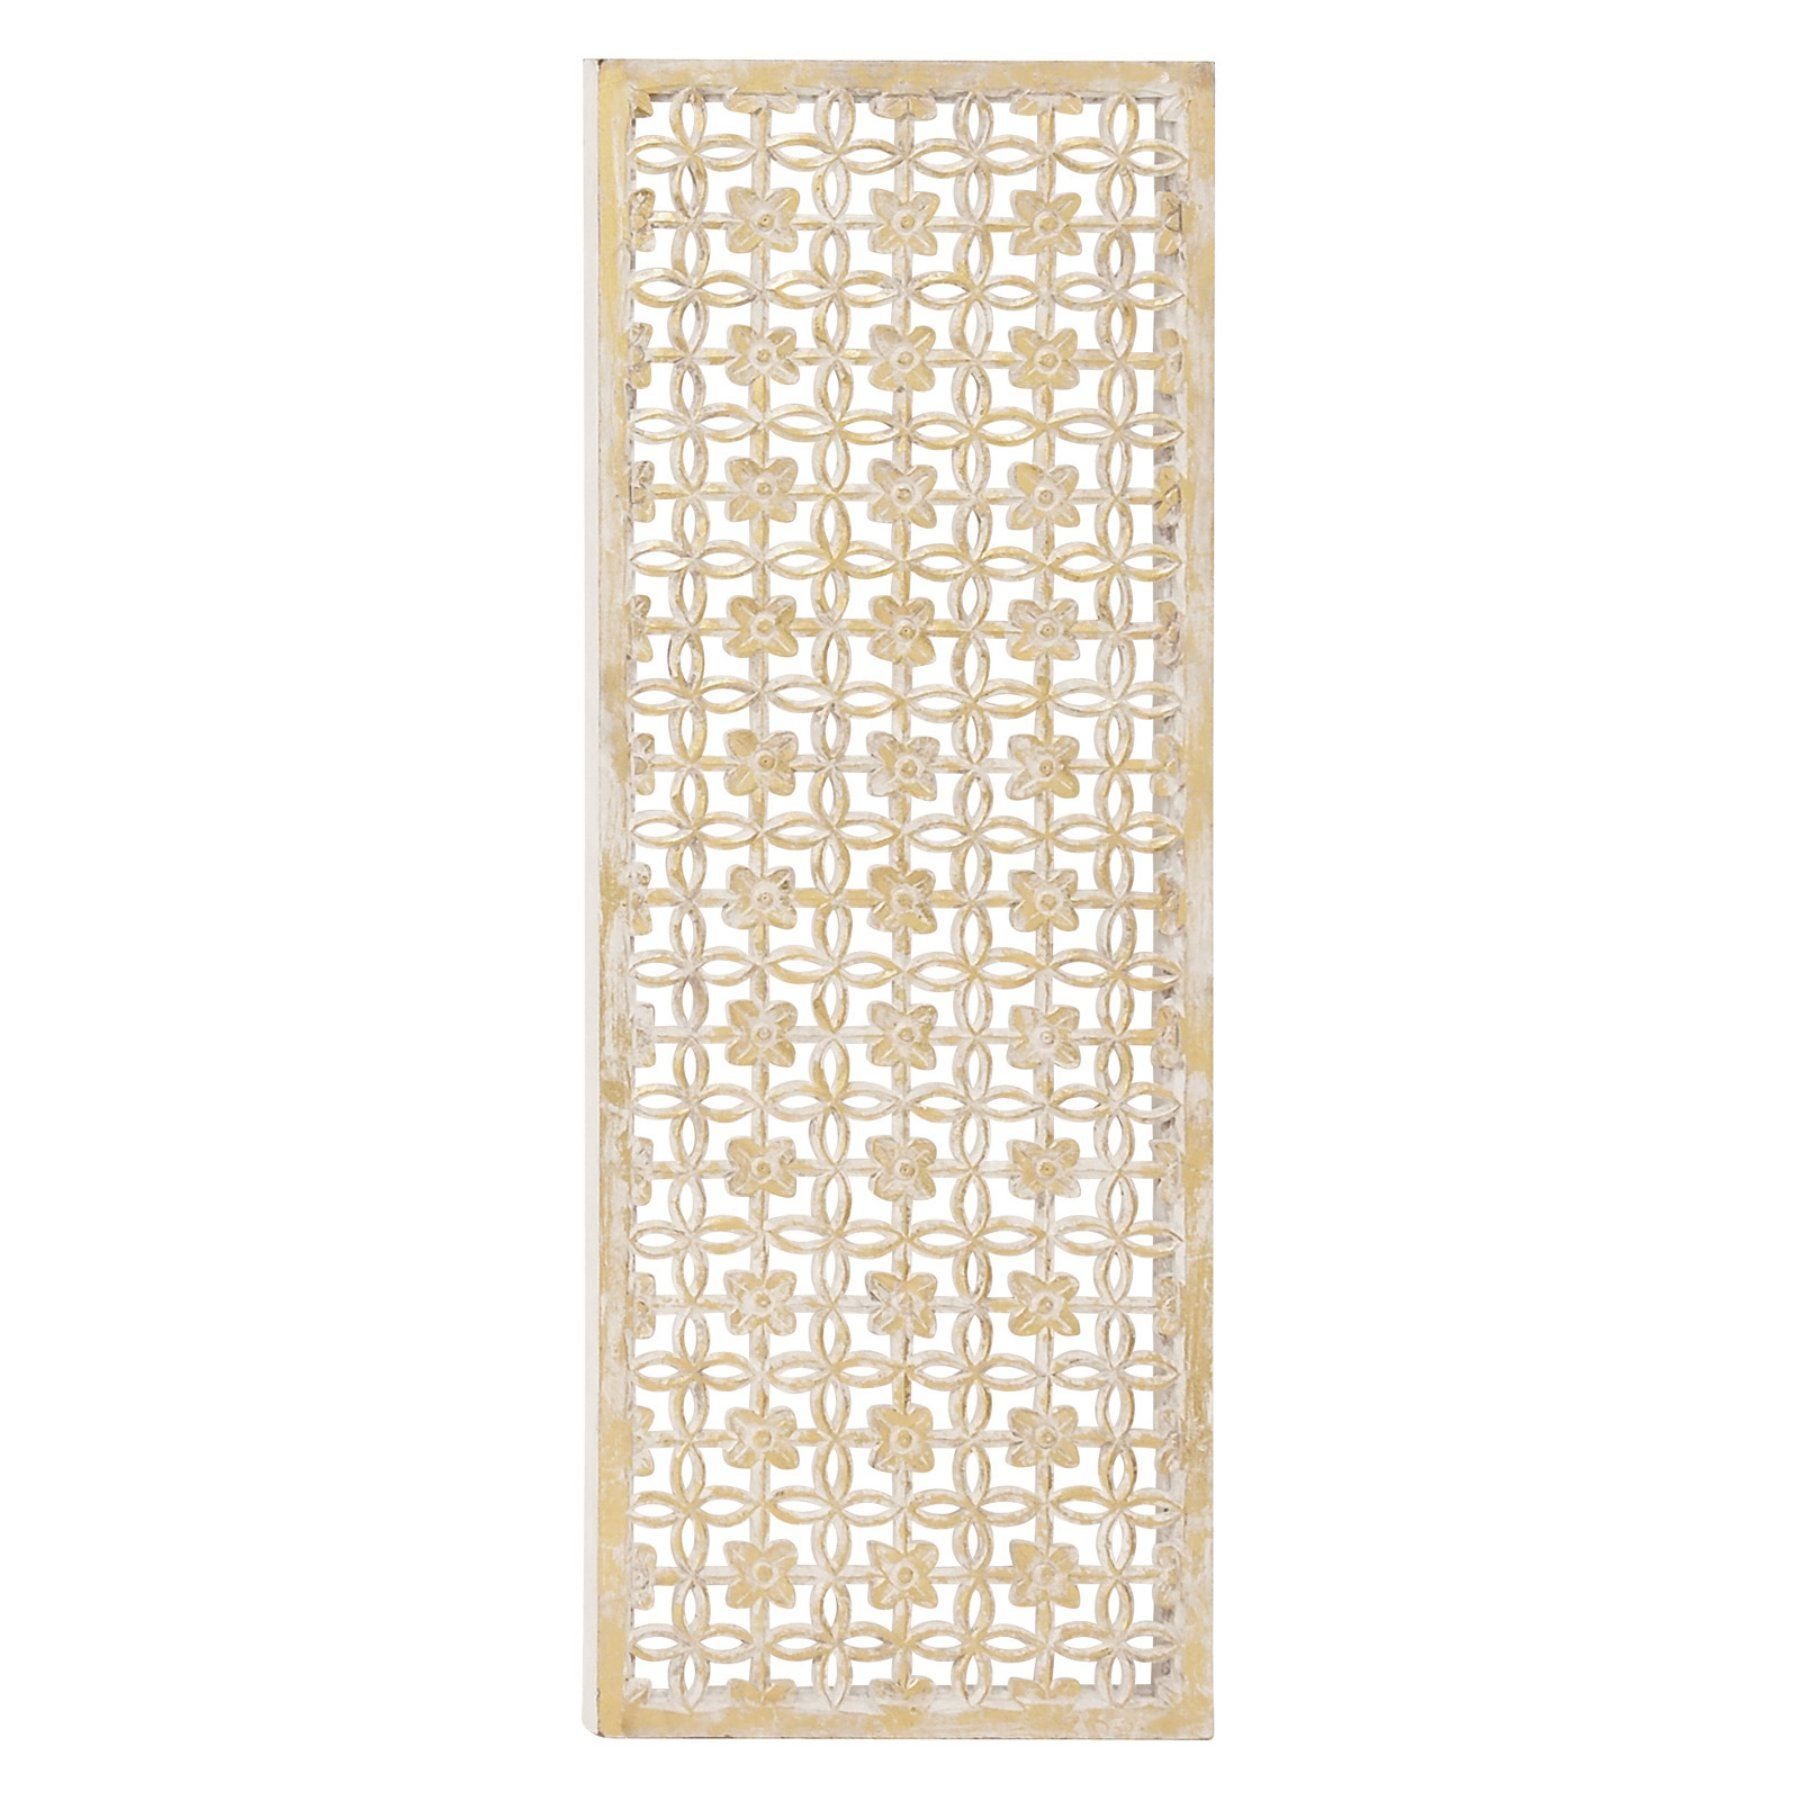 DecMode 18W x 48H in. Framed Floral Carved Wood Lattice Wall Panel ...